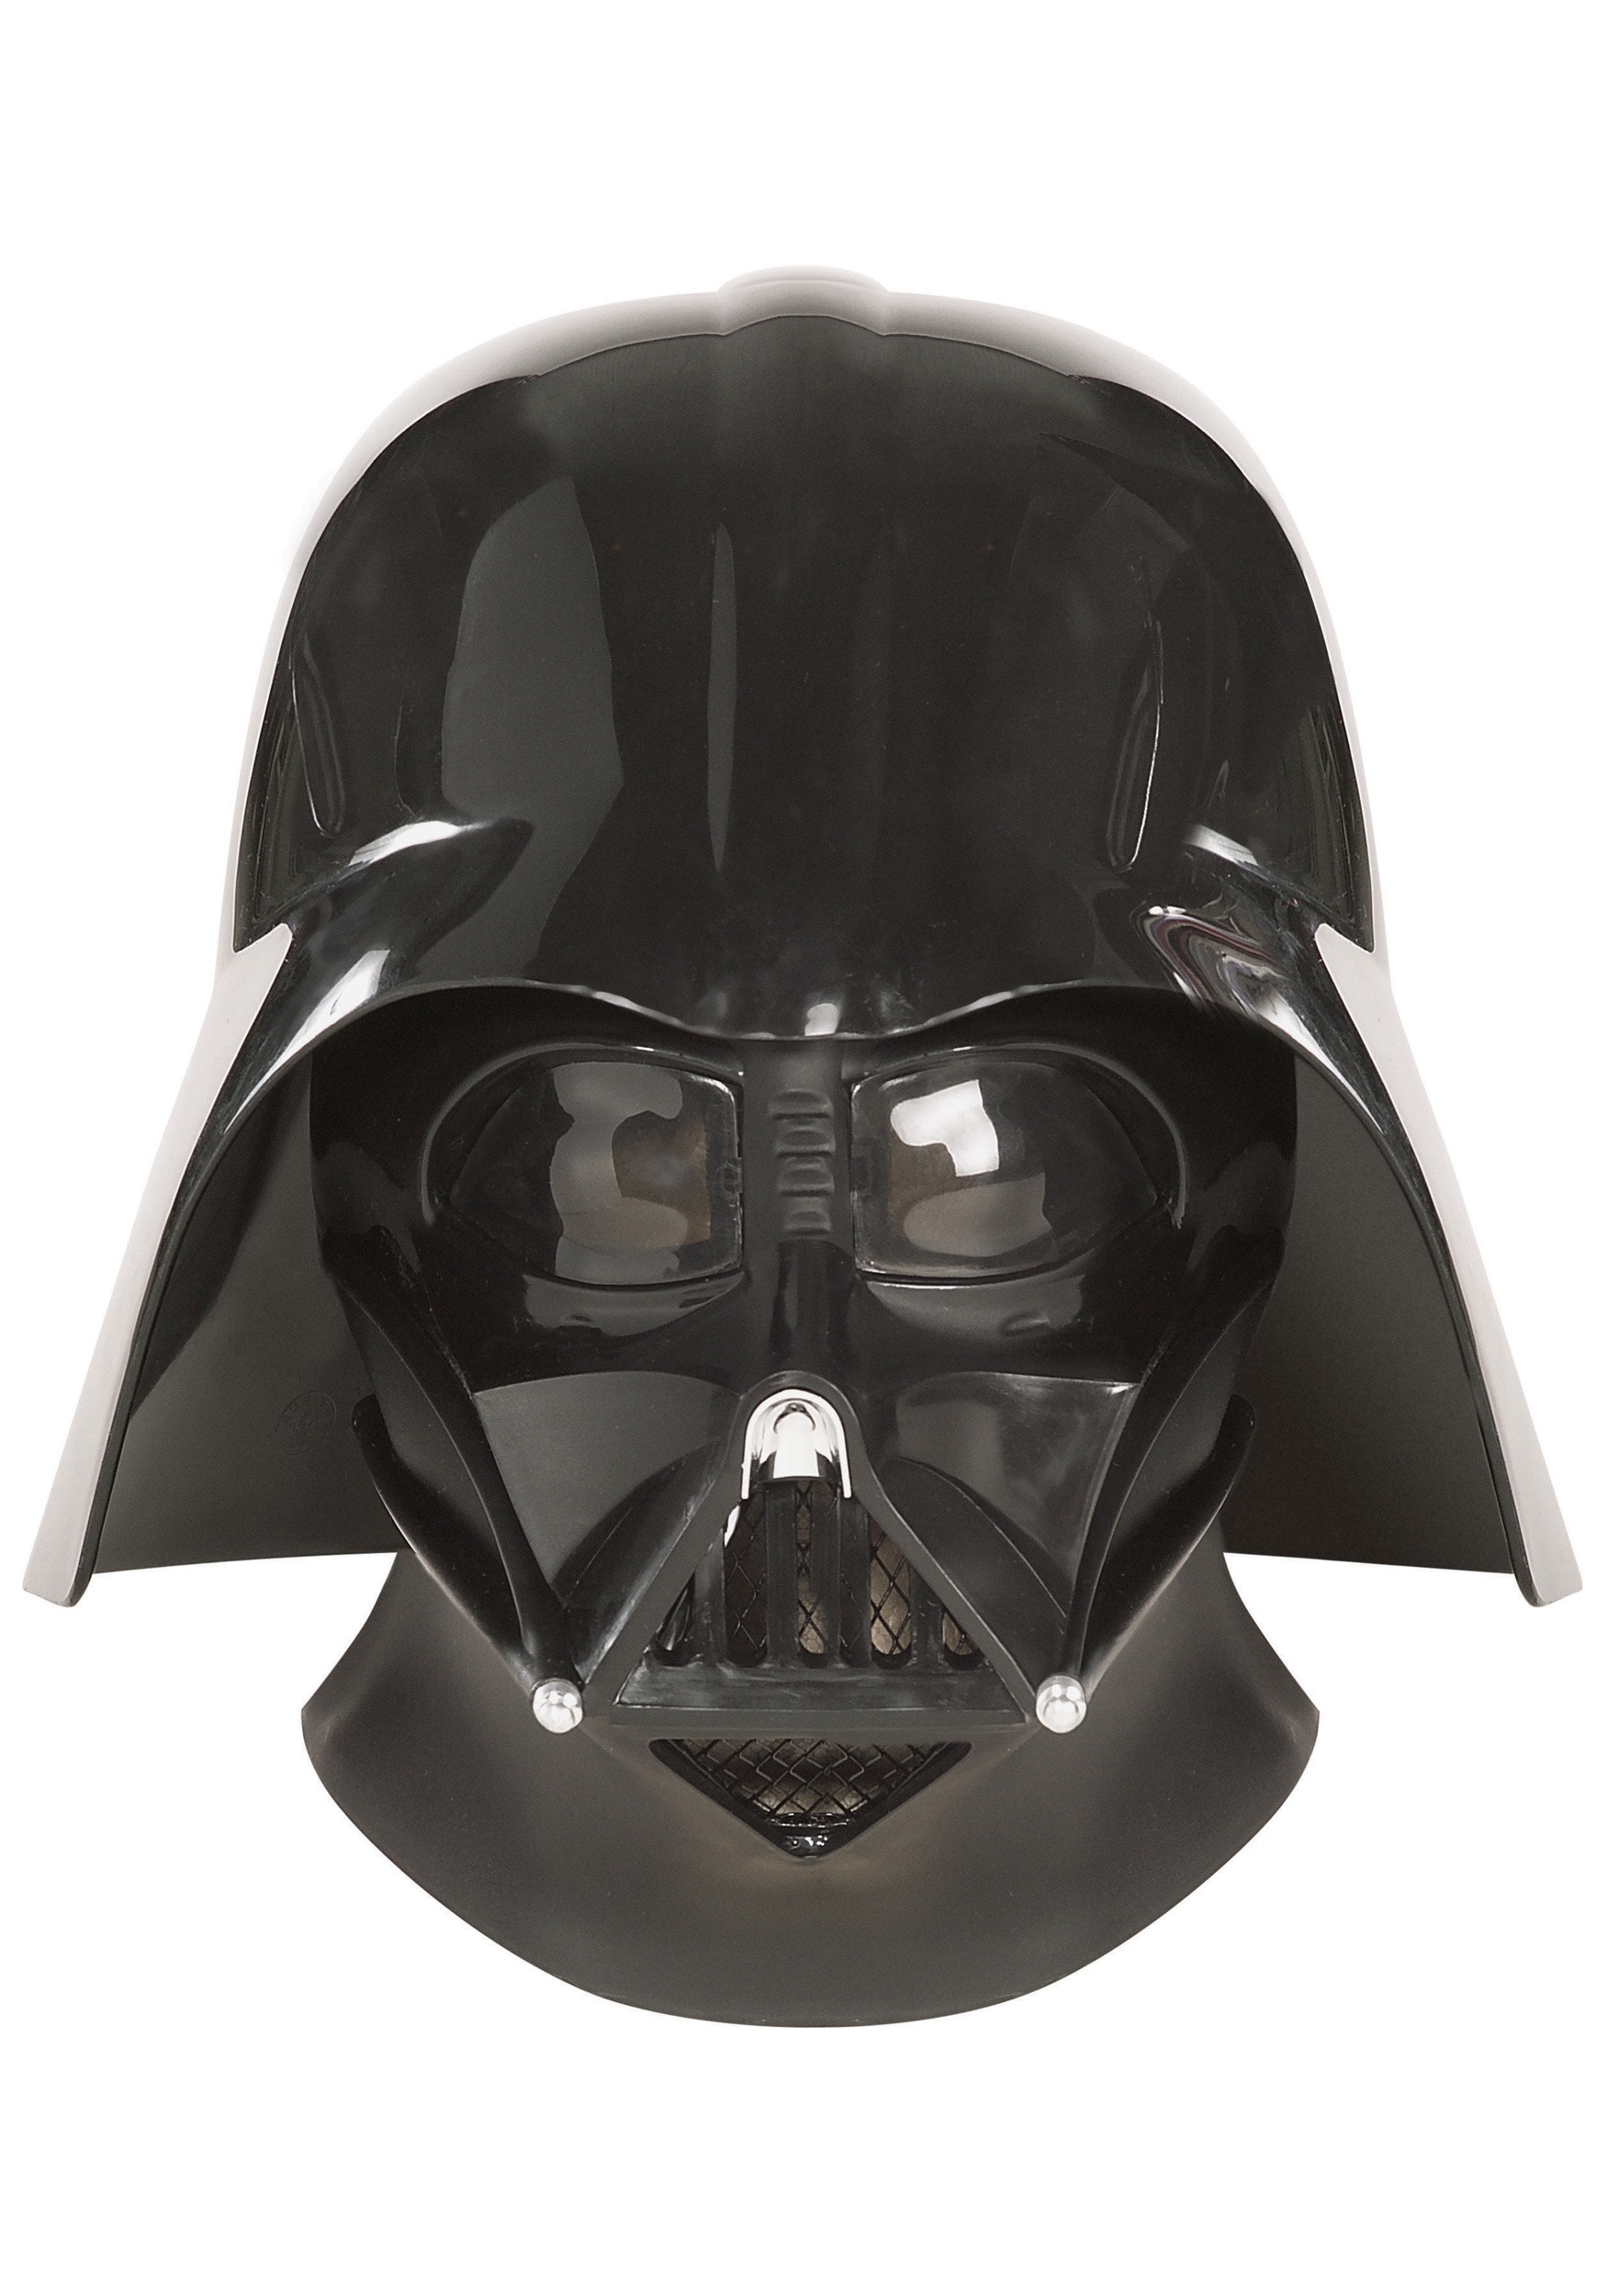 Authentic Darth Vader Helmet & Mask.